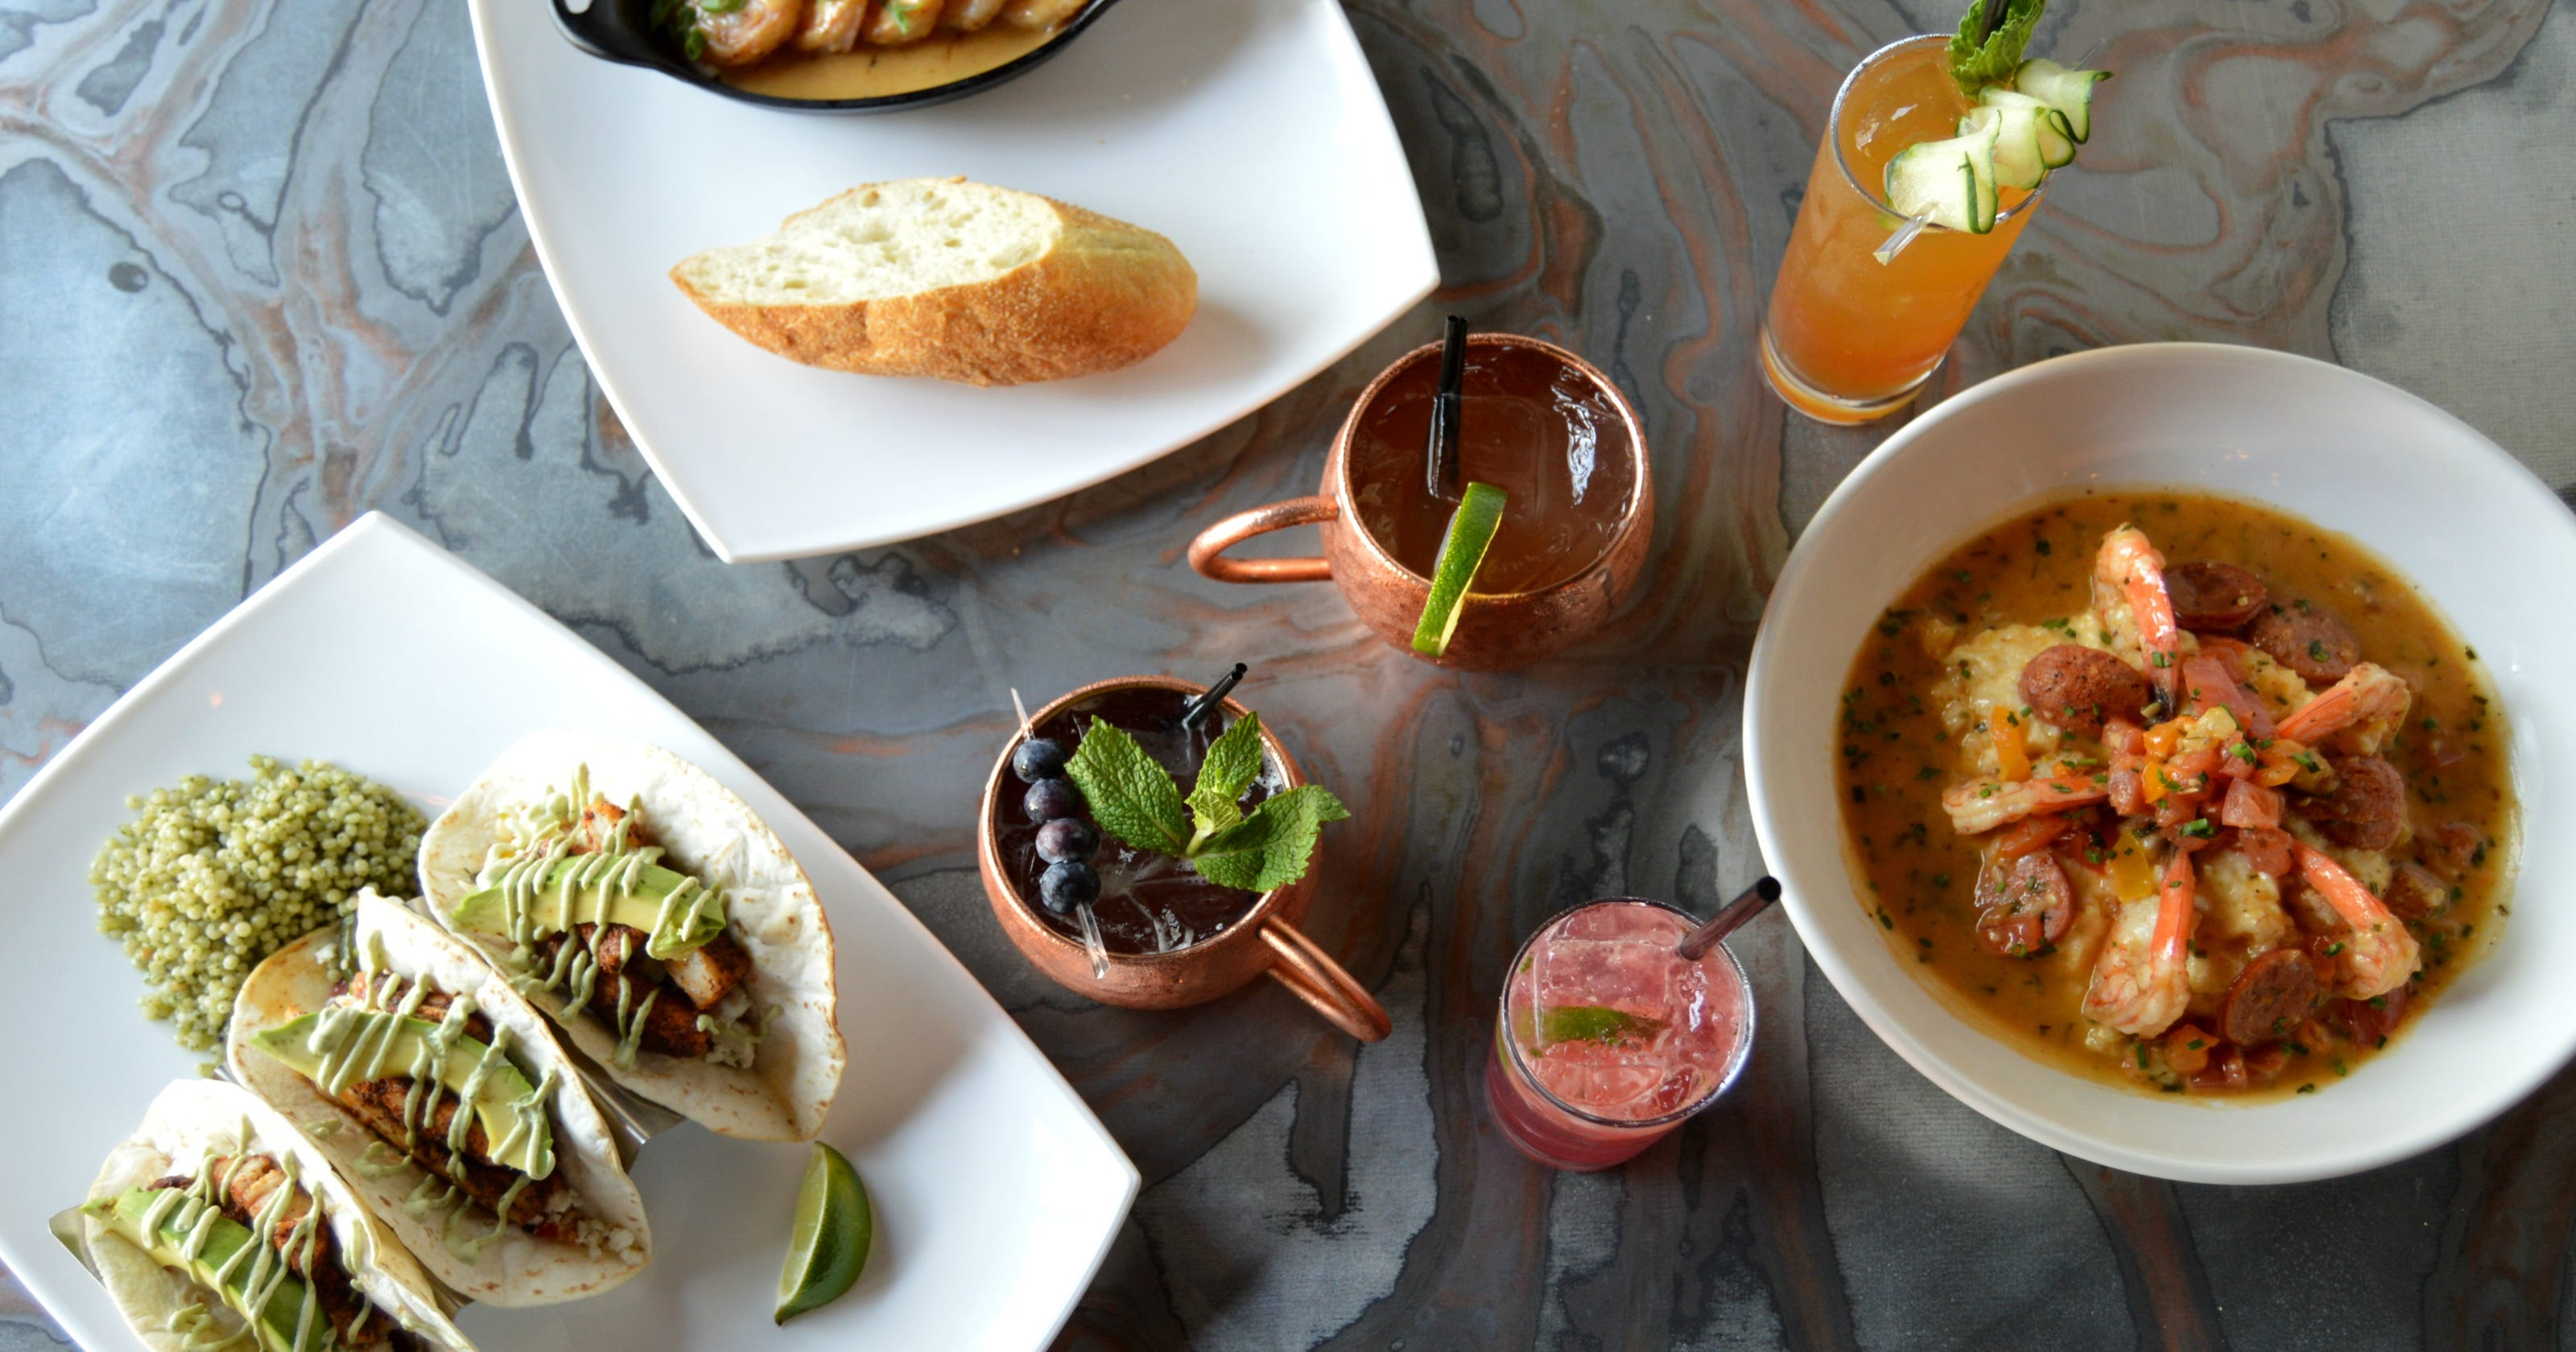 Check Out These Offseason Restaurant Specials Along The Coast